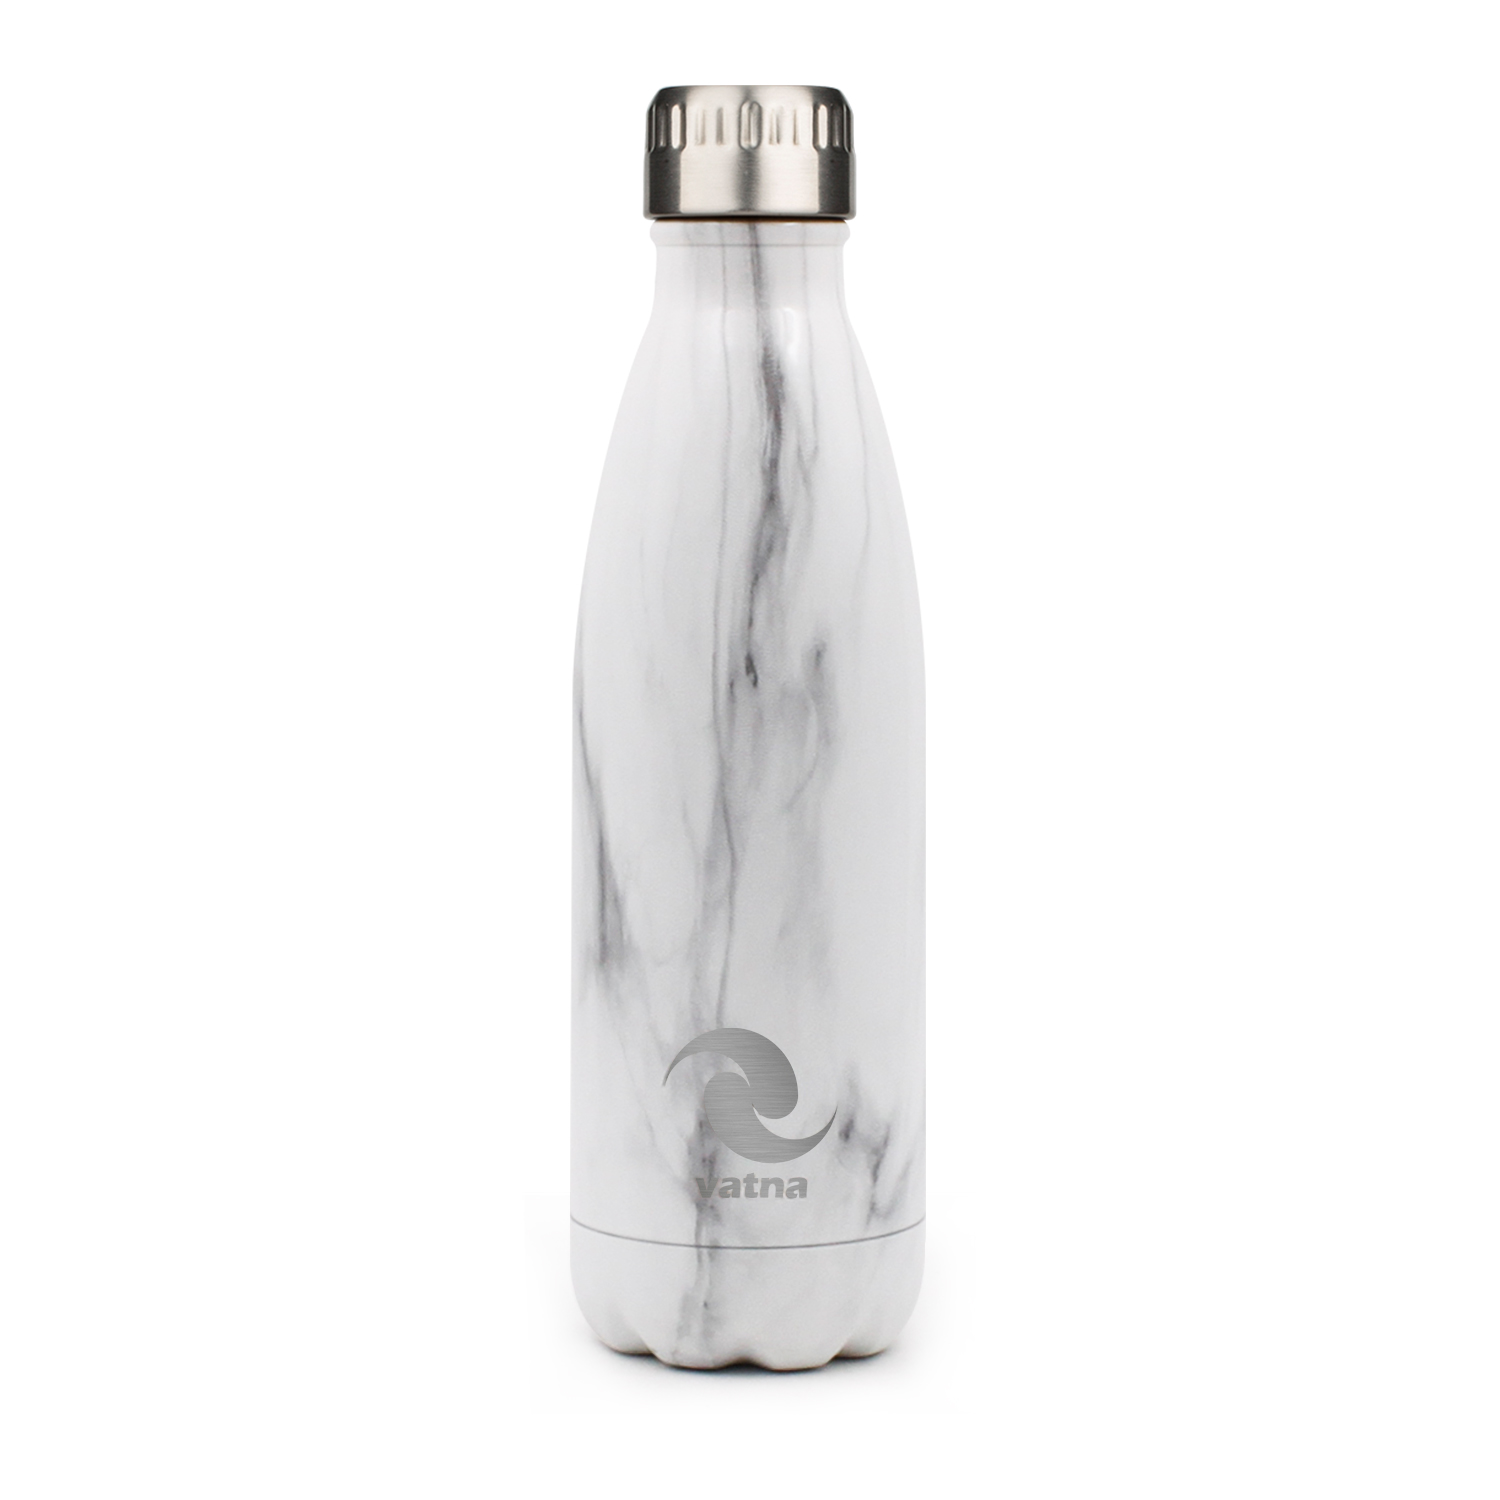 Vatna Insulated White Marble Water Bottles 17oz Vatna Bottle